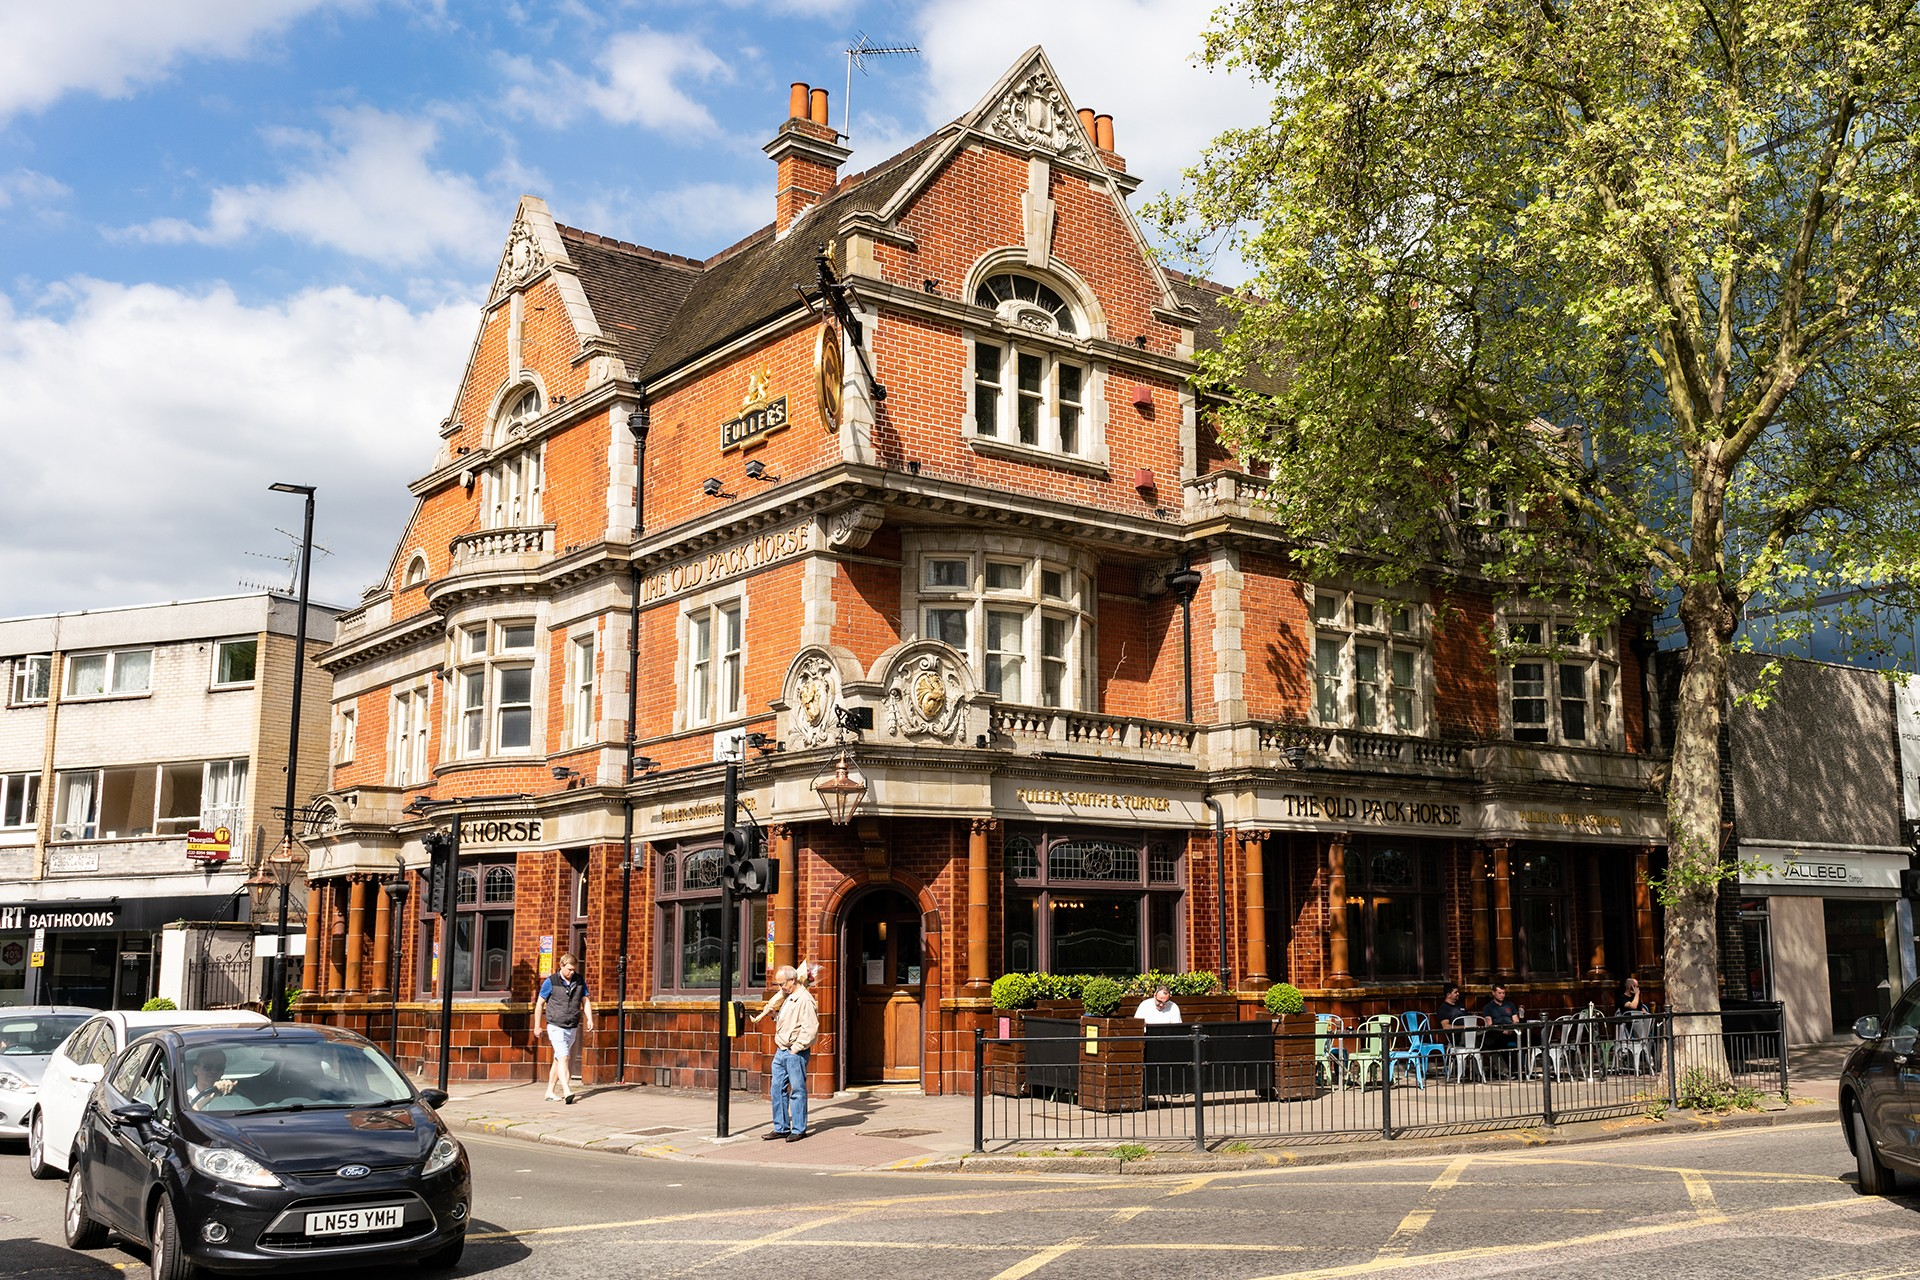 The Old Pack Horse - Fuller's Pub and Restaurant in Chiswick